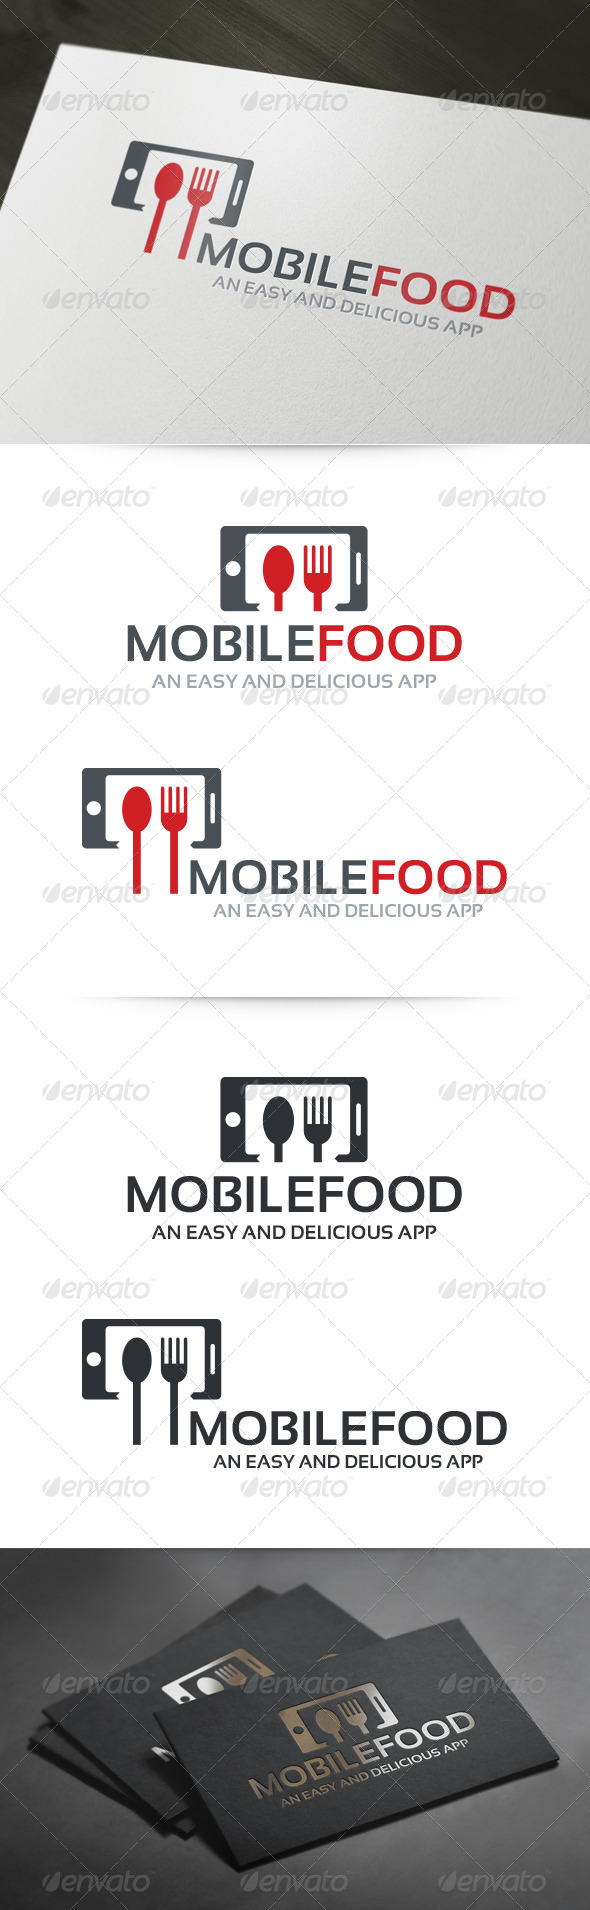 Mobile Food Logo